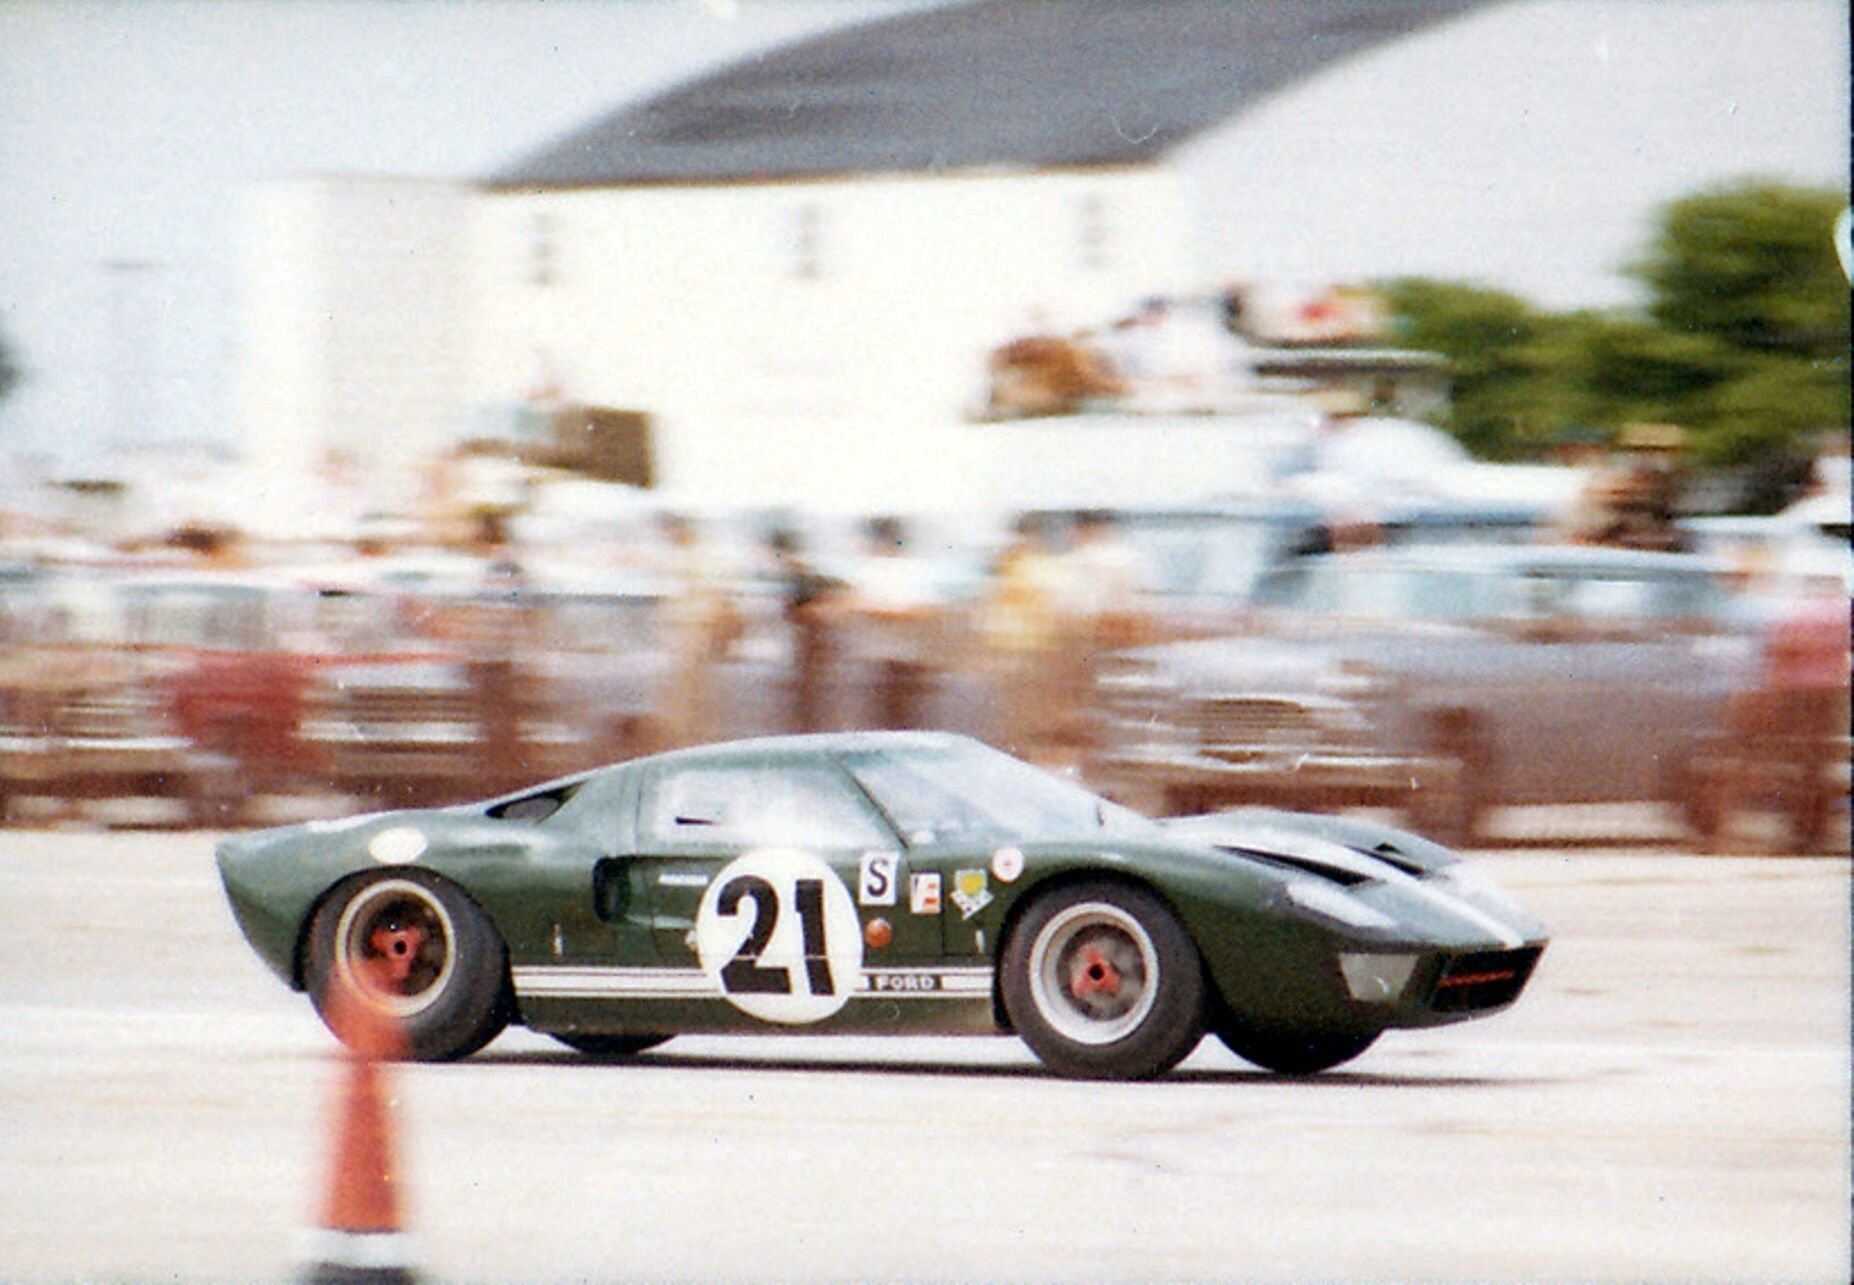 1964 Ford GT40 Prototype GT/105 testing 21